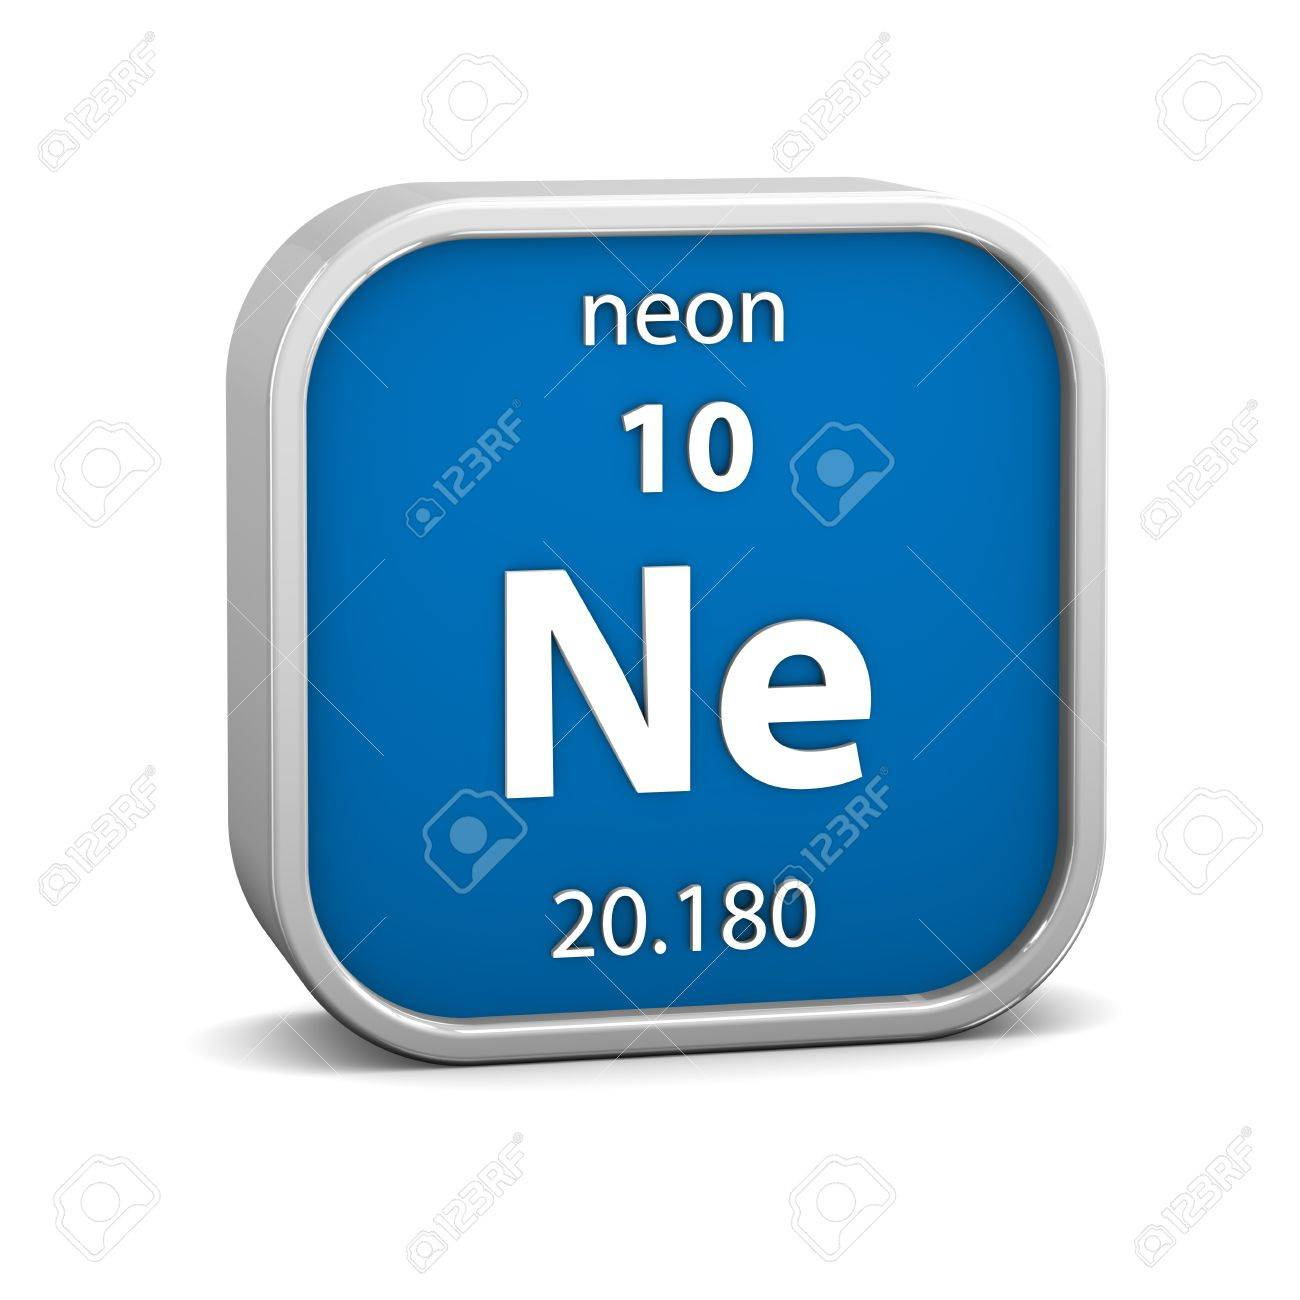 Neon material on the periodic table part of a series stock photo neon material on the periodic table part of a series stock photo 19127341 gamestrikefo Image collections